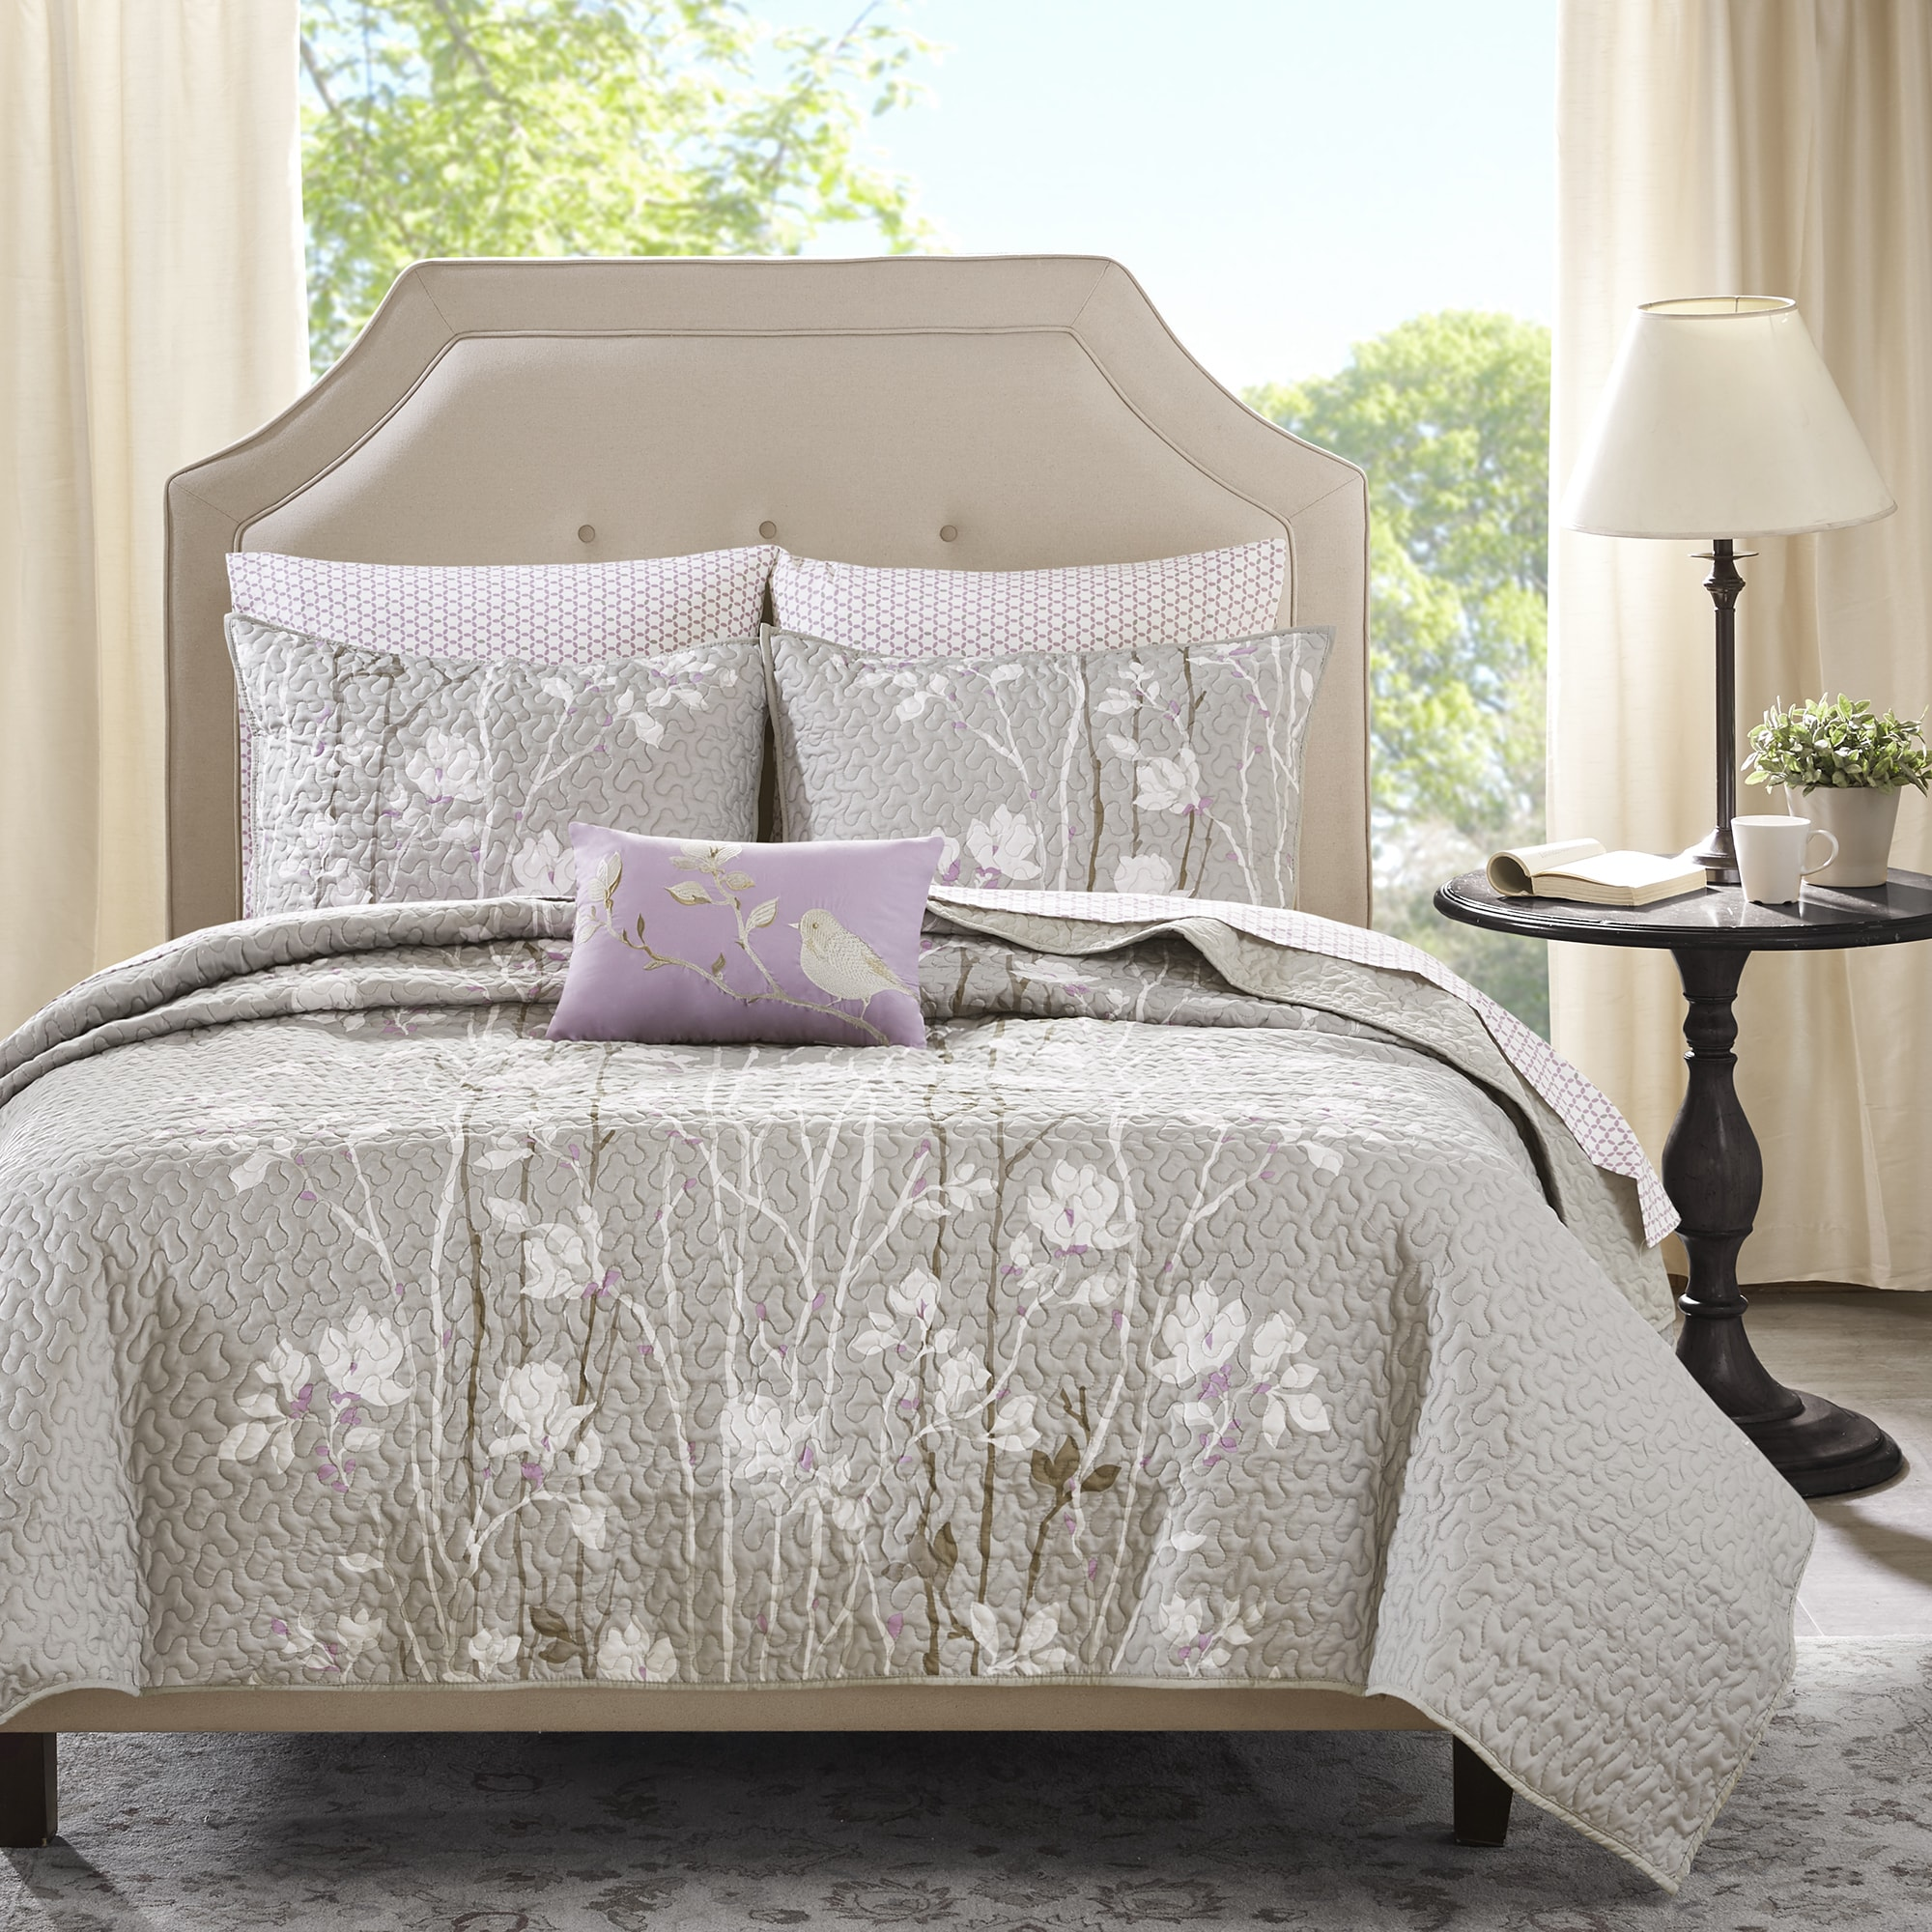 aqua madison essentials bed cotton product bedding set overstock bath comforter com complete caitlin sheet and park